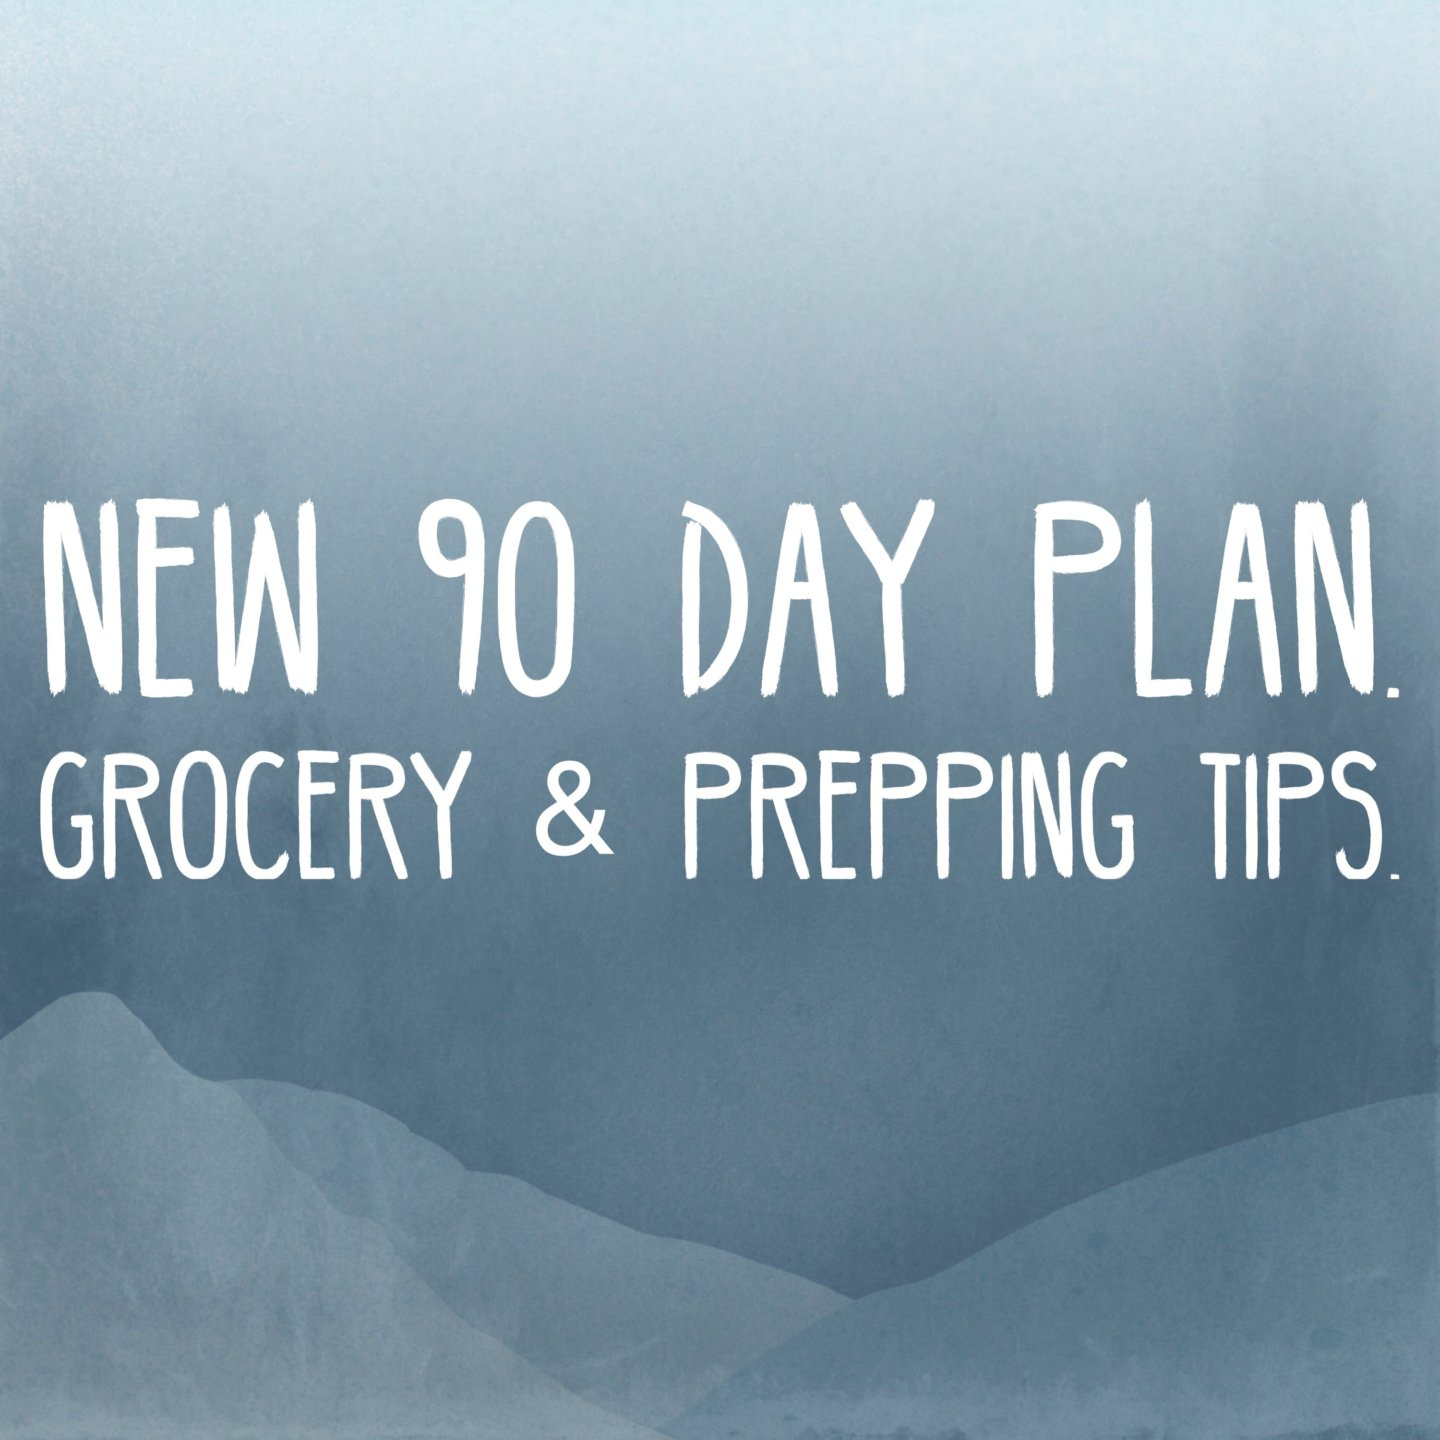 New 90 Day Plan,  grocery and prep tips